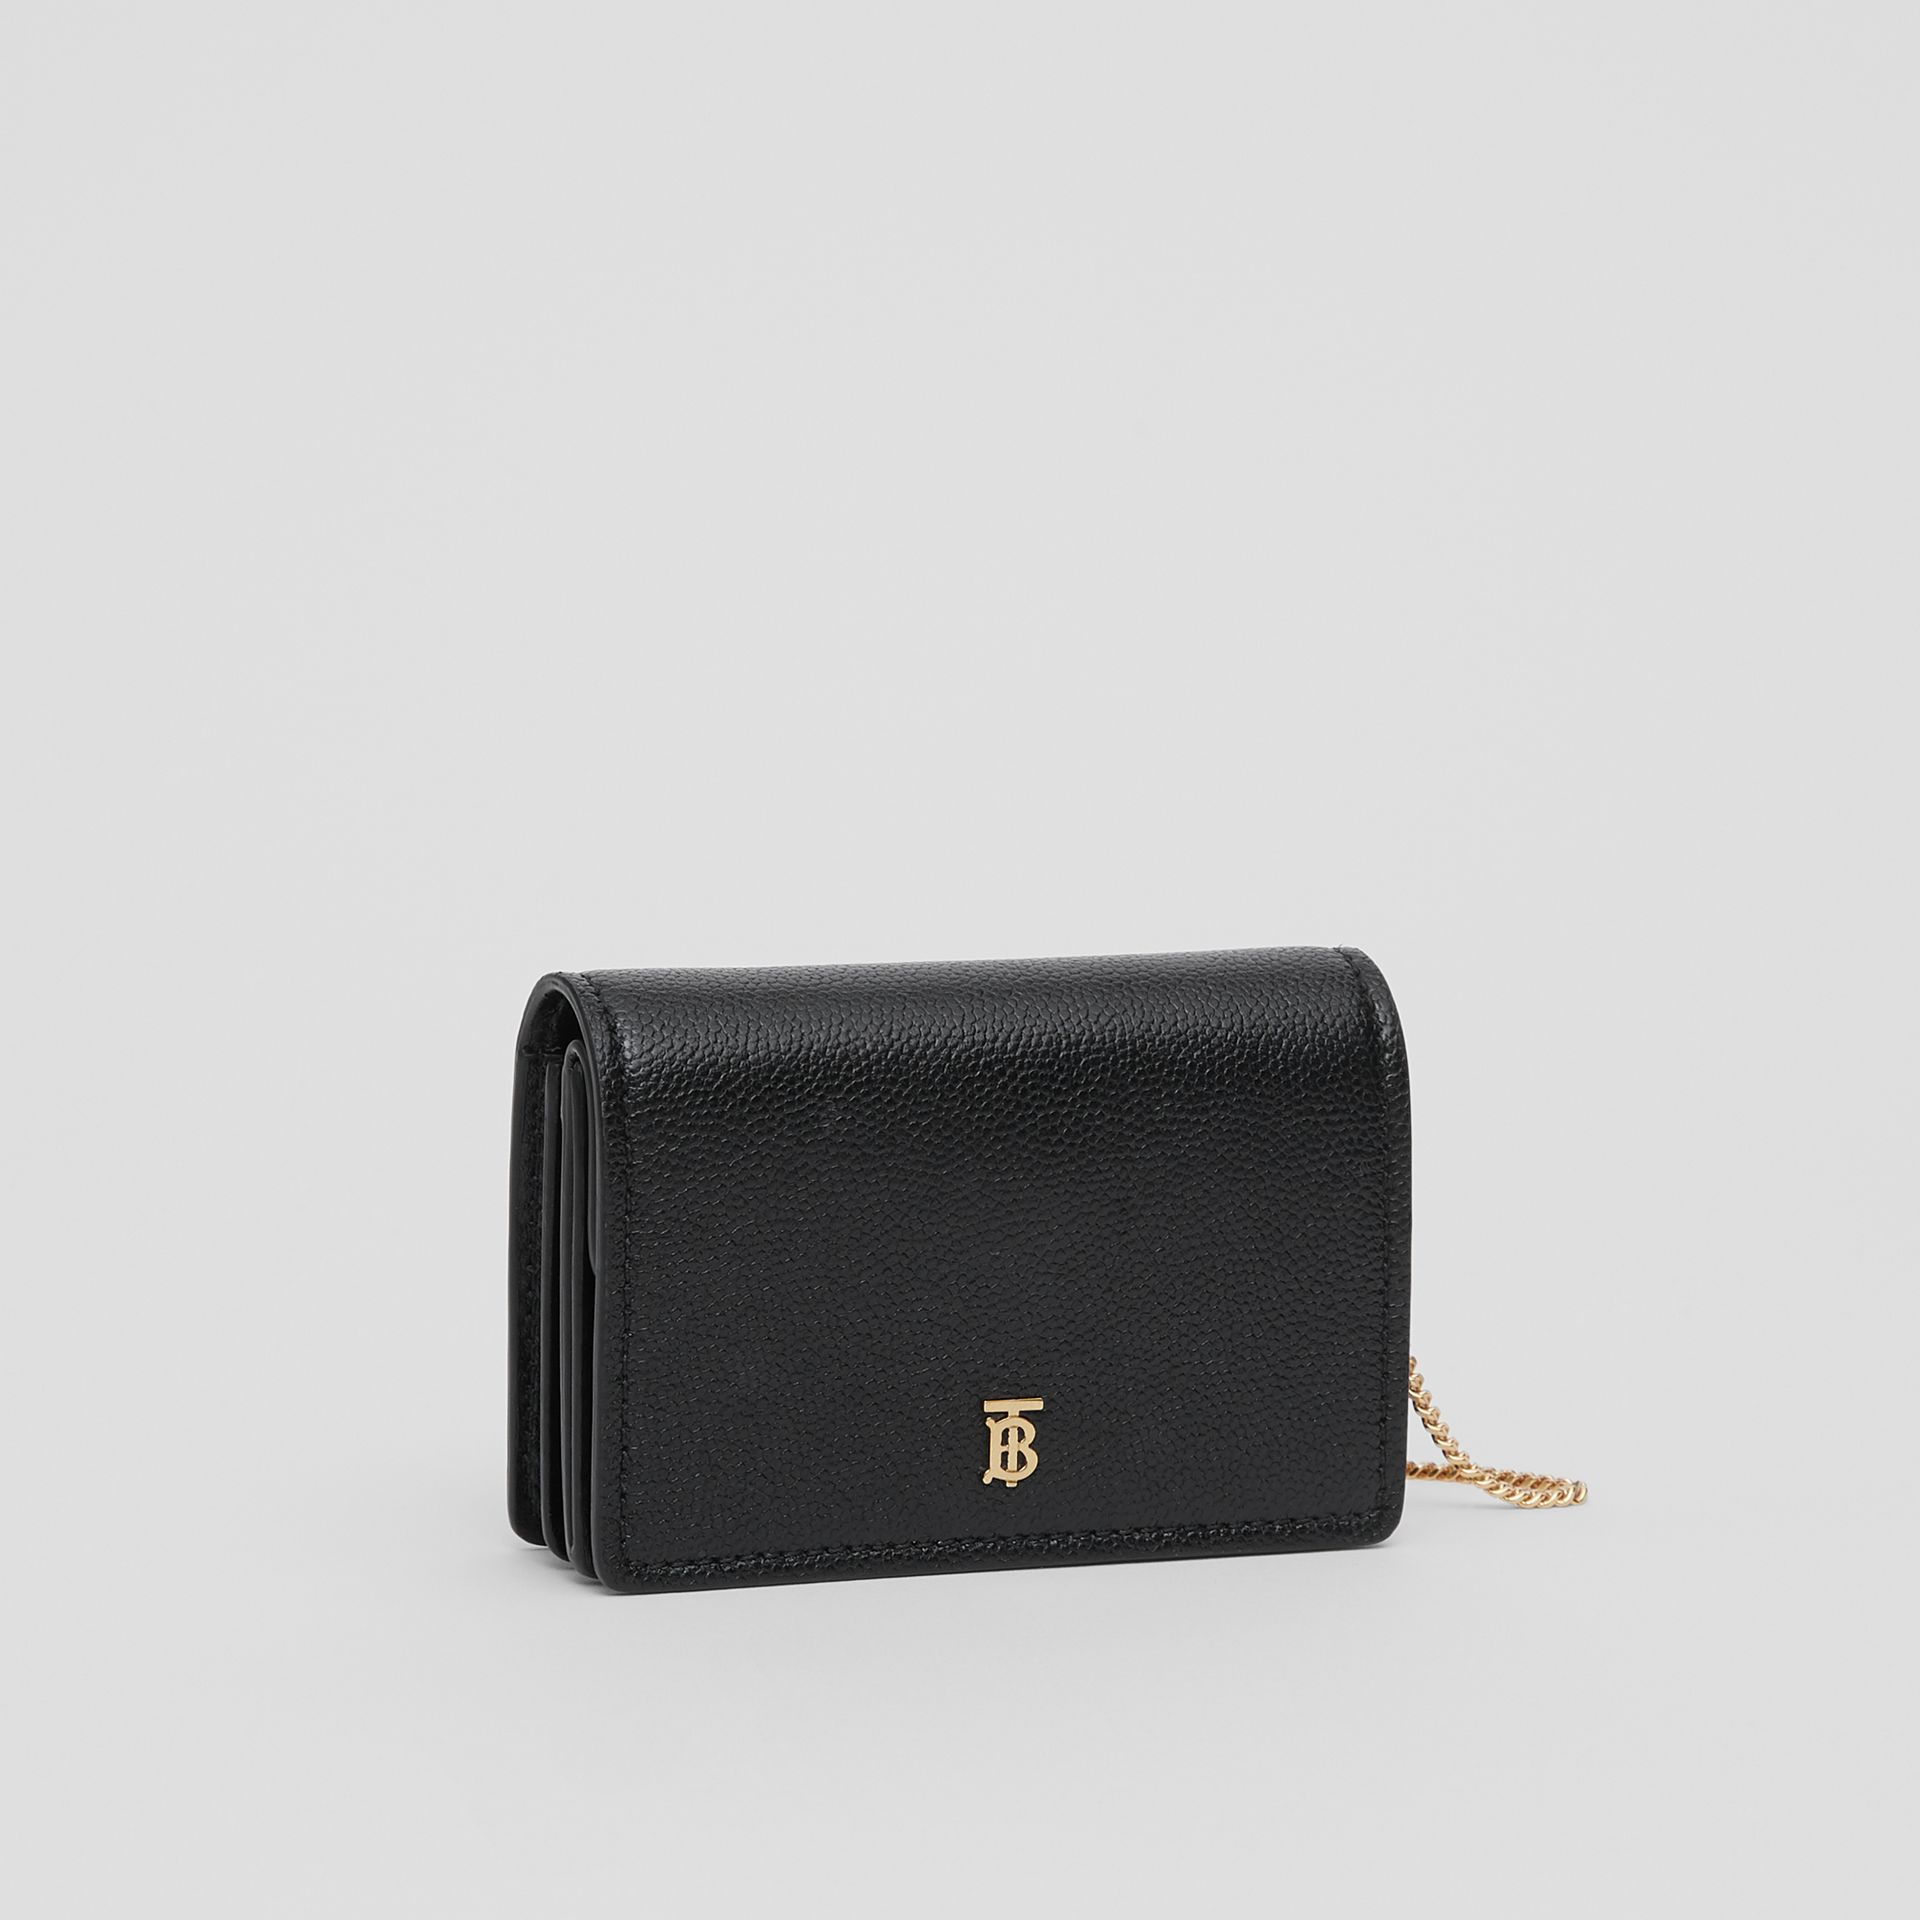 Grainy Leather Card Case with Detachable Strap in Black - Women | Burberry - gallery image 6